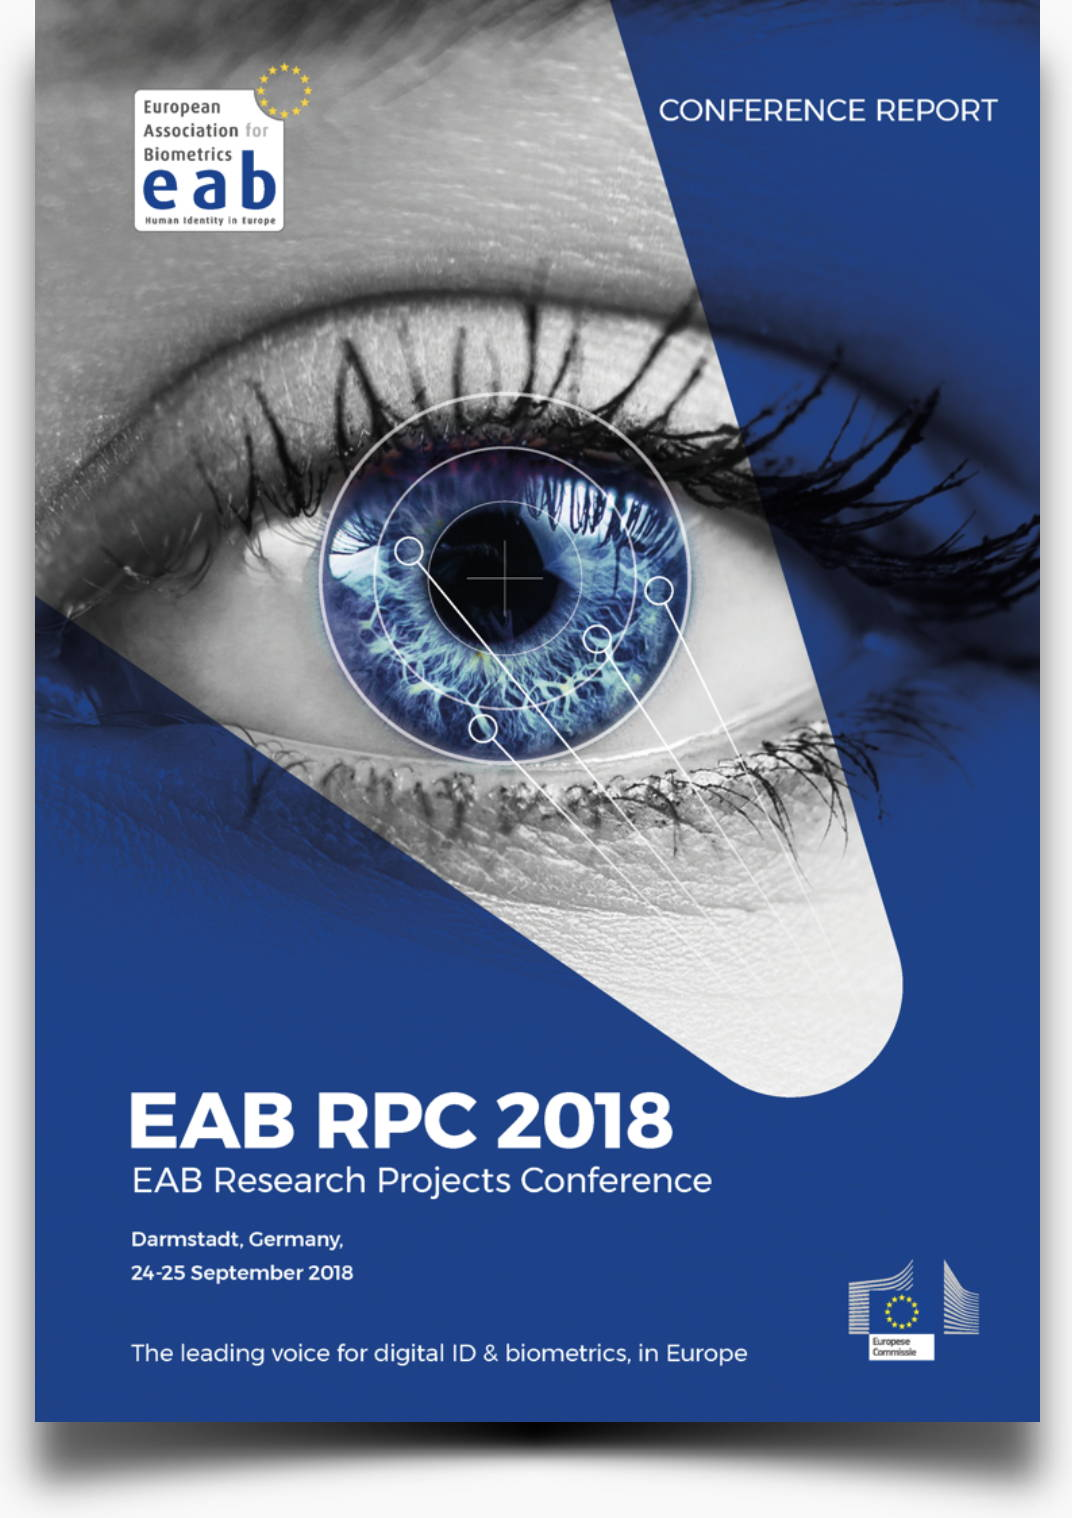 [Banner] EAB-RPC 2018 Conference Report